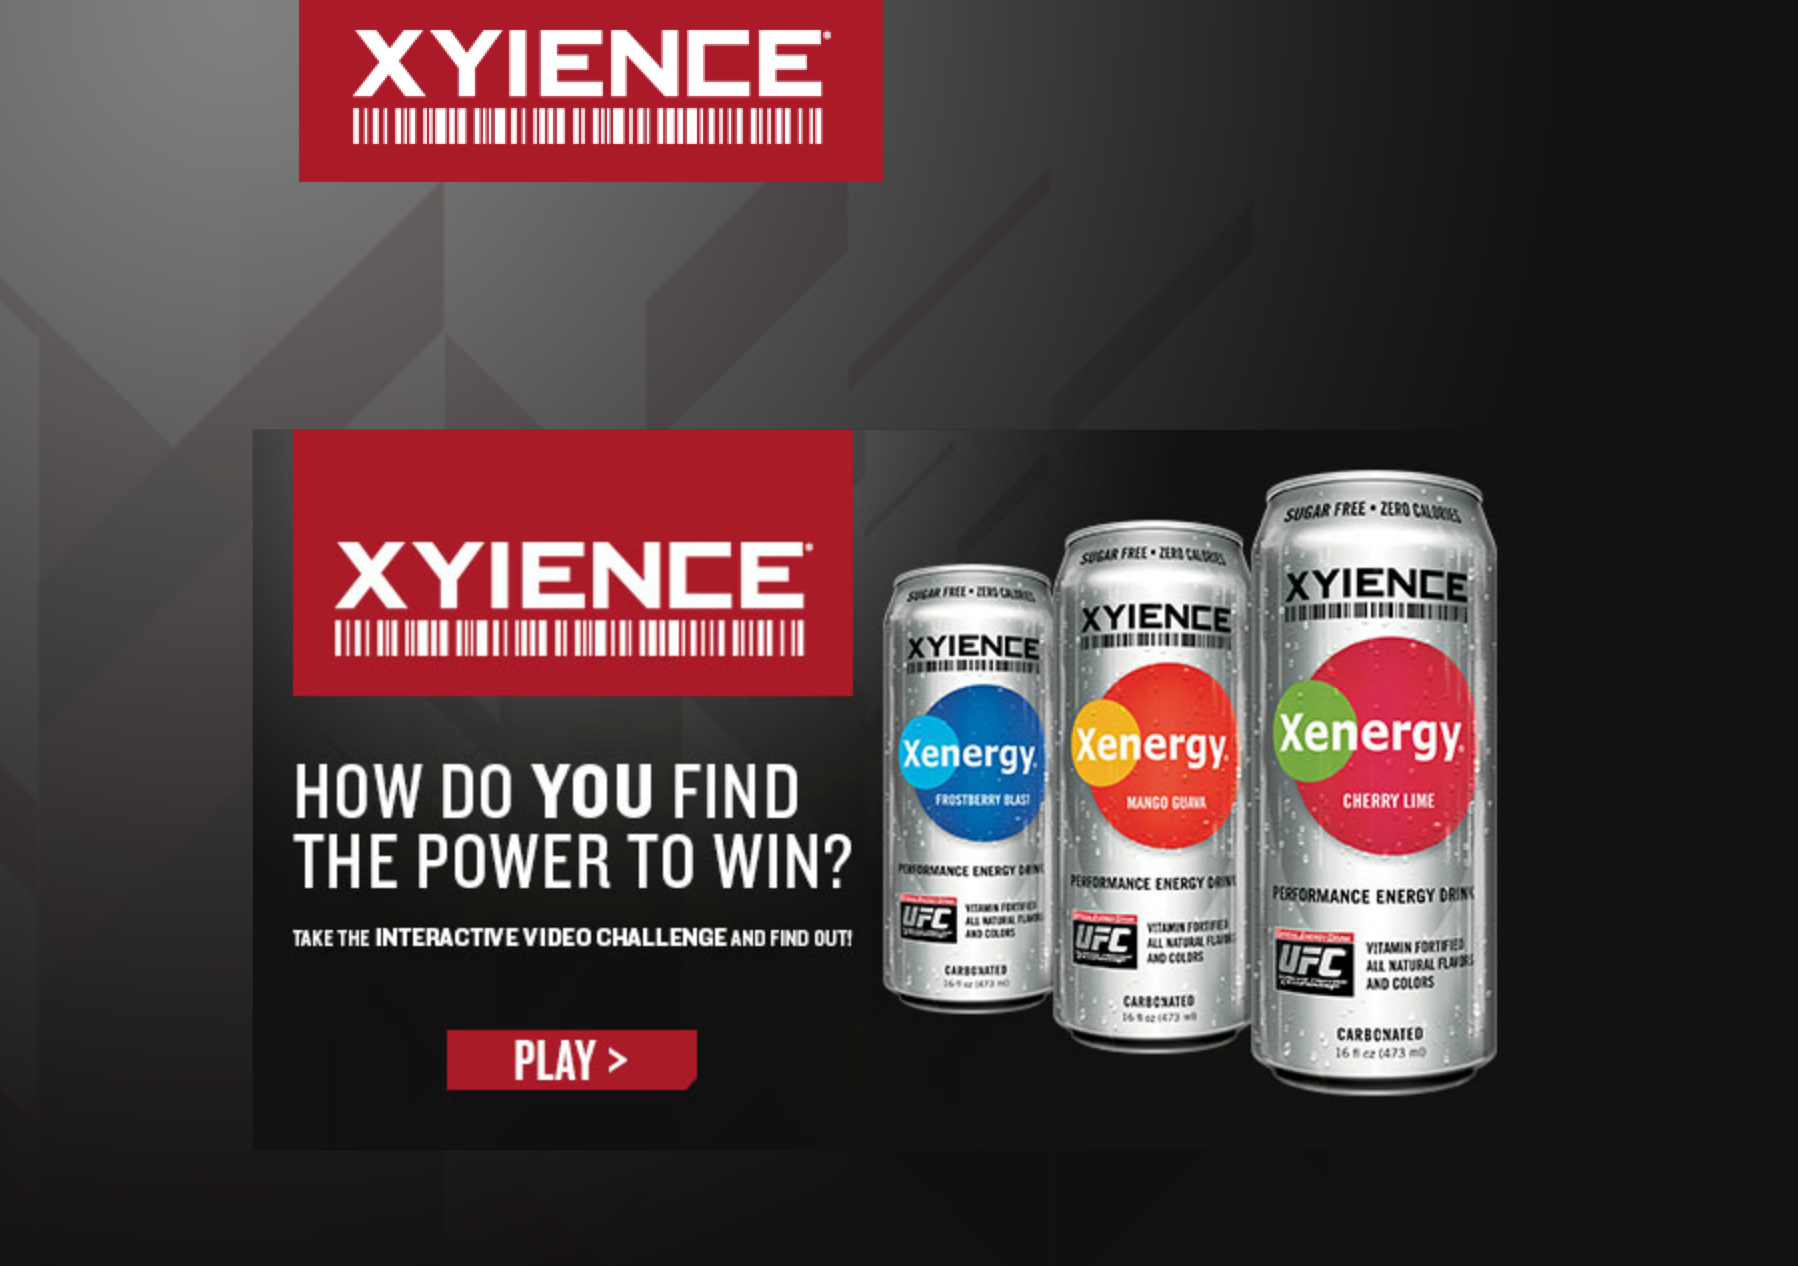 XYIENCE Xenergy Interactive Ad Campaign Tops Industry ...